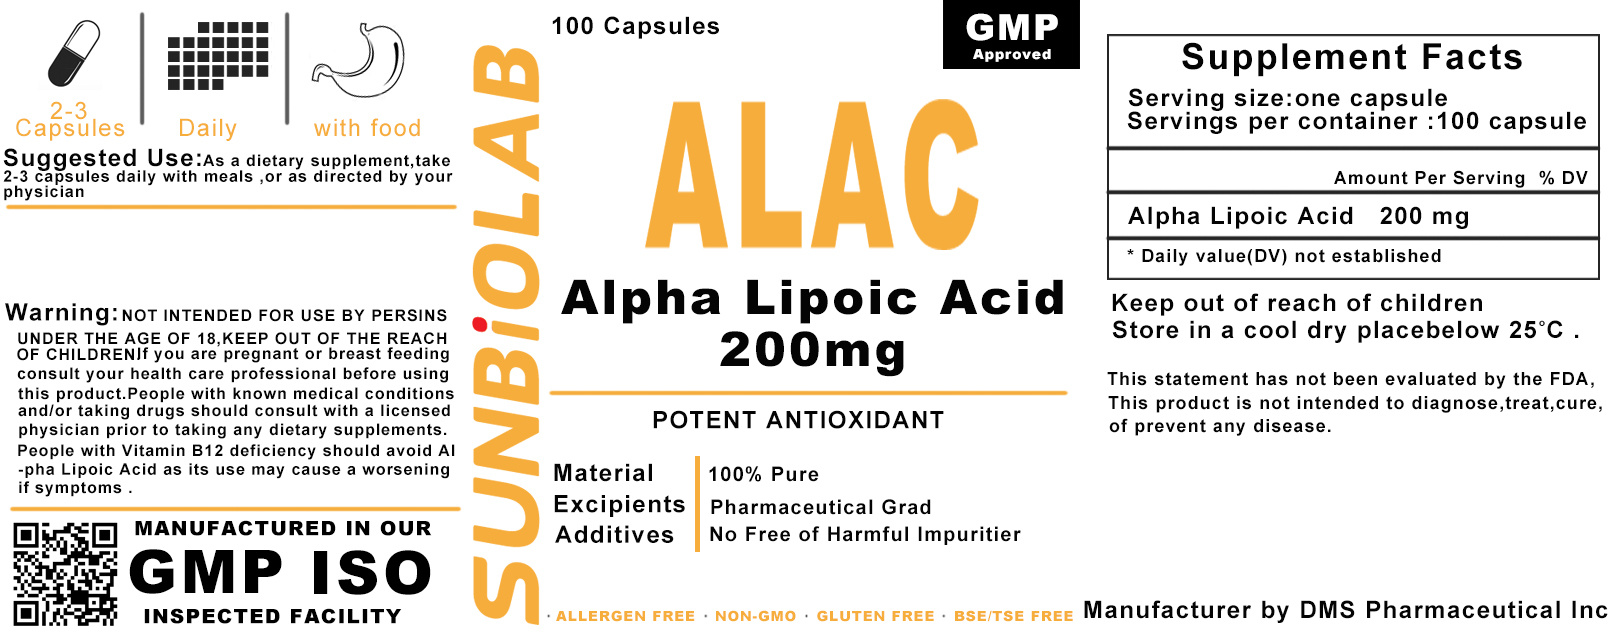 Thioctic Acid (Lipoic Acid) Capsule 200mg GMP Factory